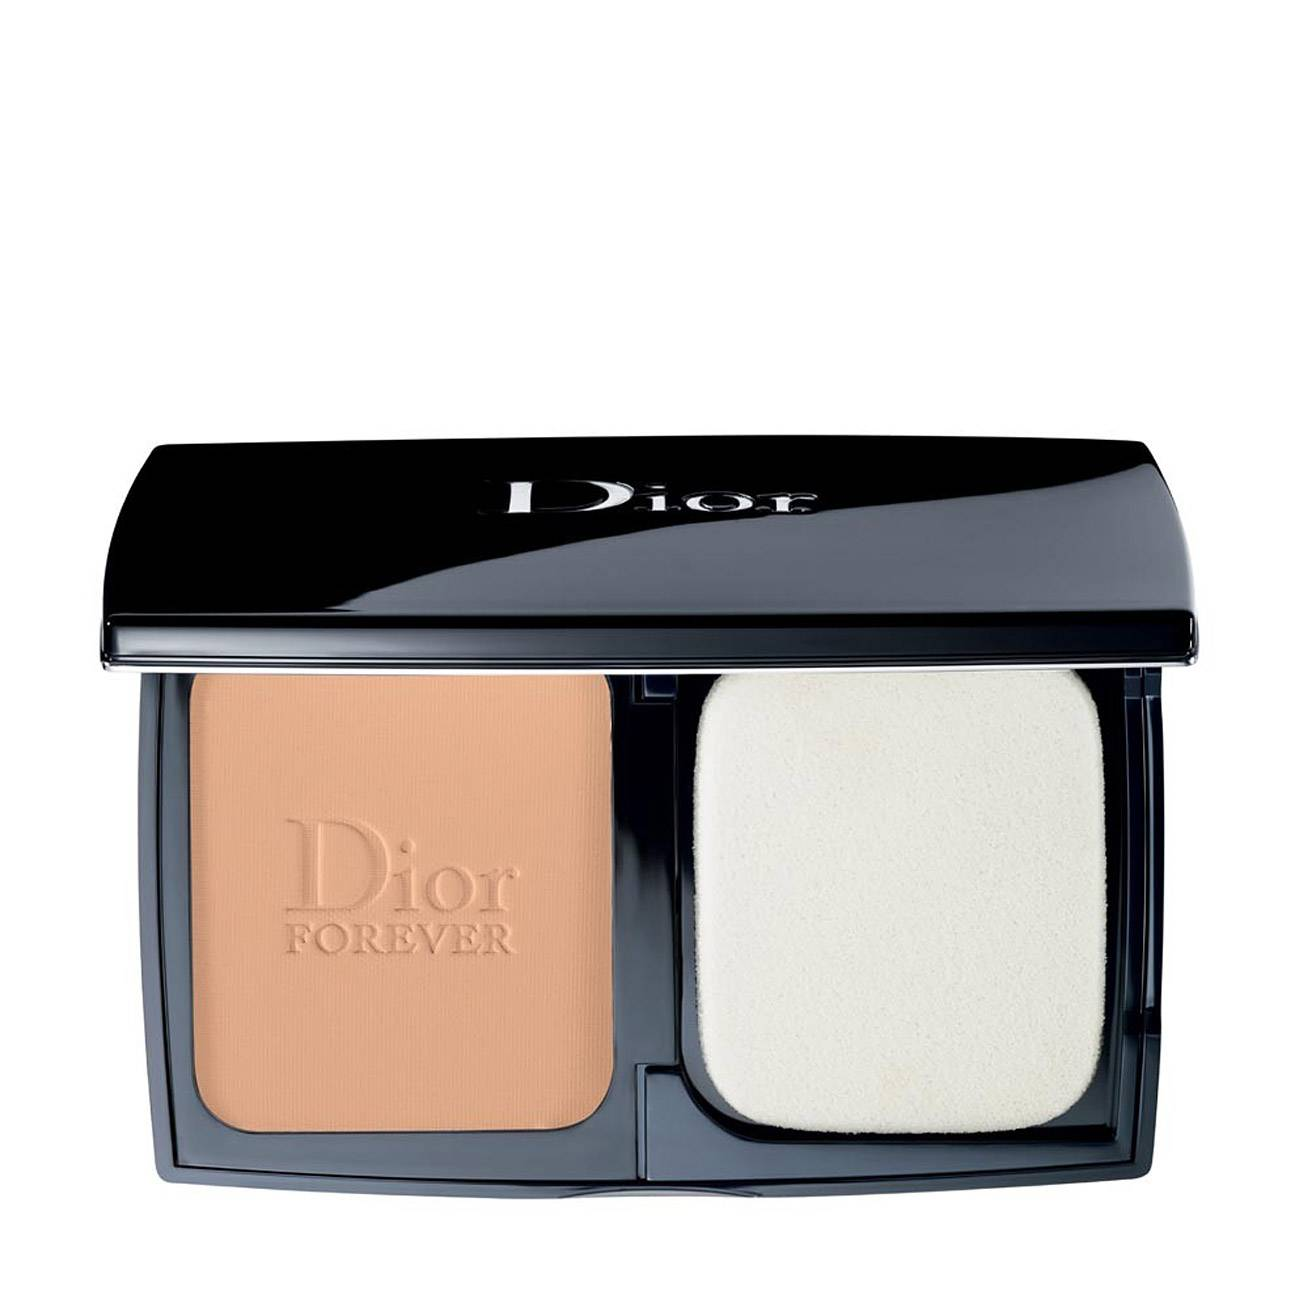 DIORSKIN FOREVER EXTREME CONTROL - 9 gr 032-Rosy Beige